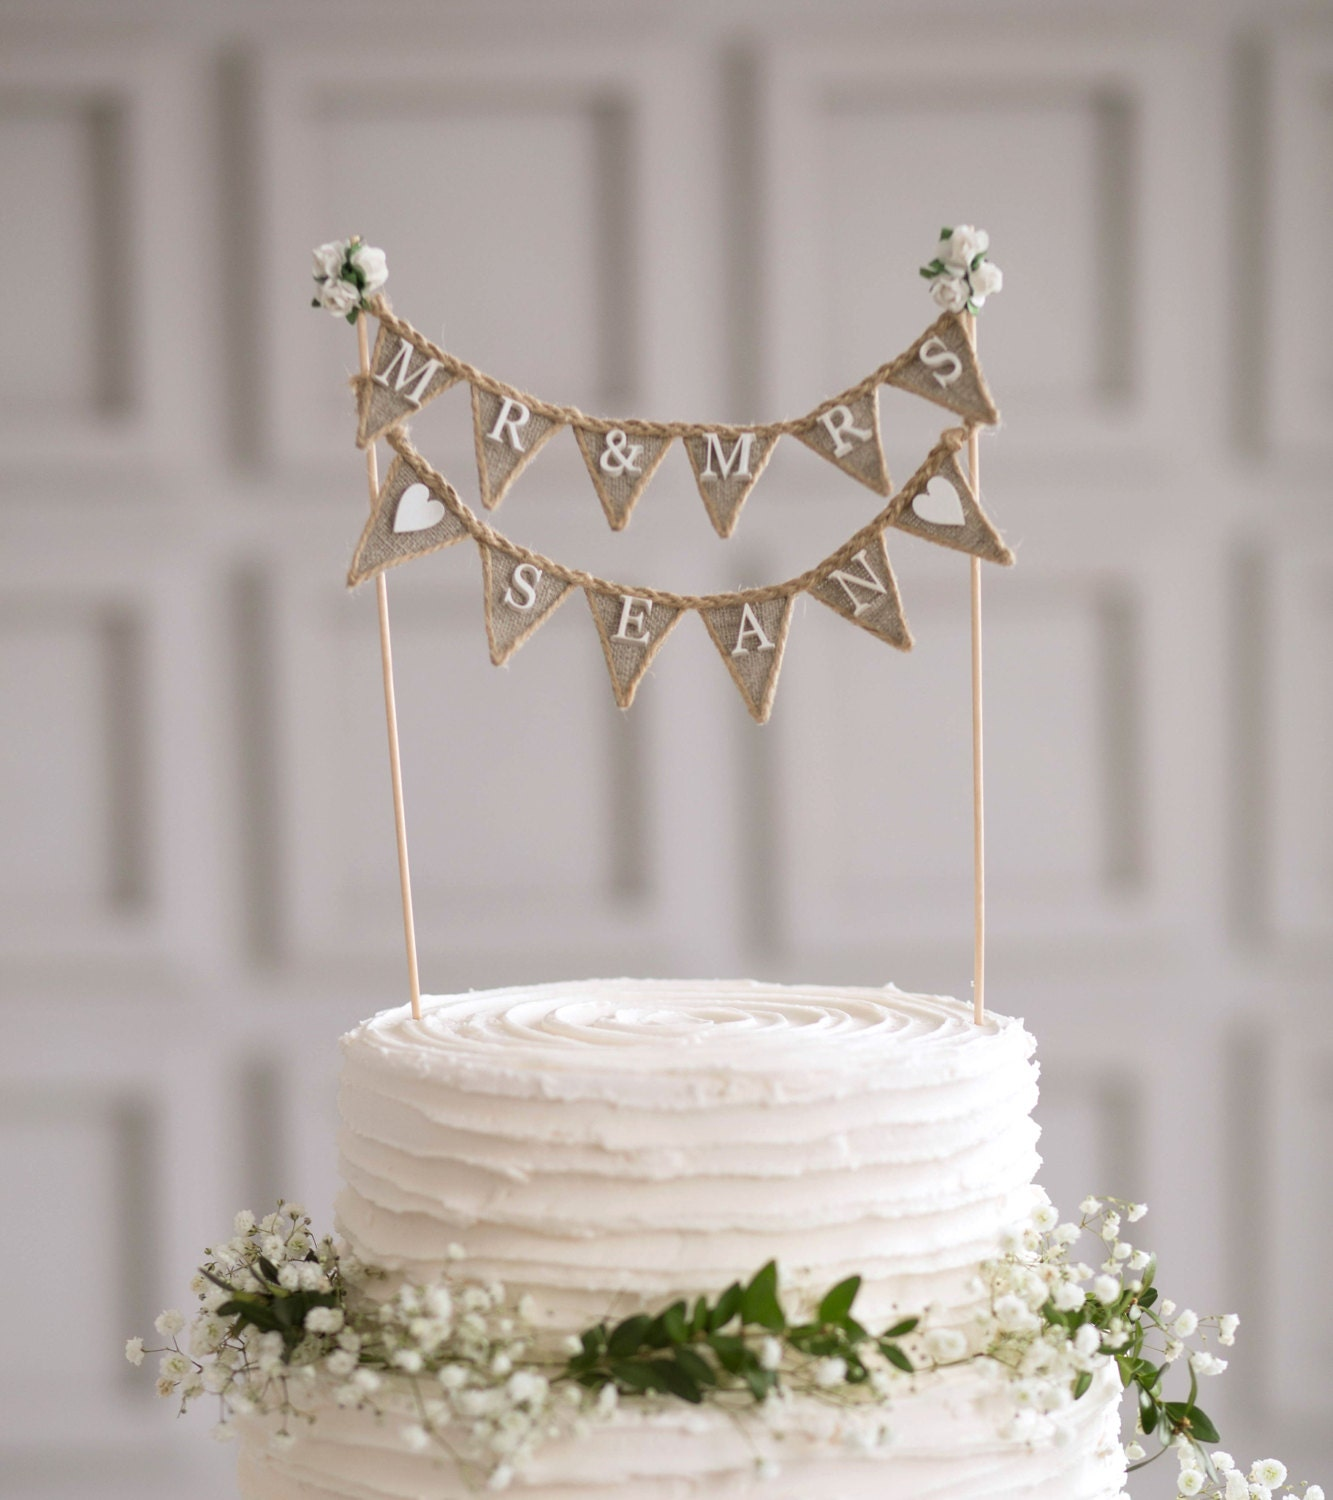 diy rustic wedding cake toppers mr amp mrs wedding cake topper wedding rustic cake toppers 13619